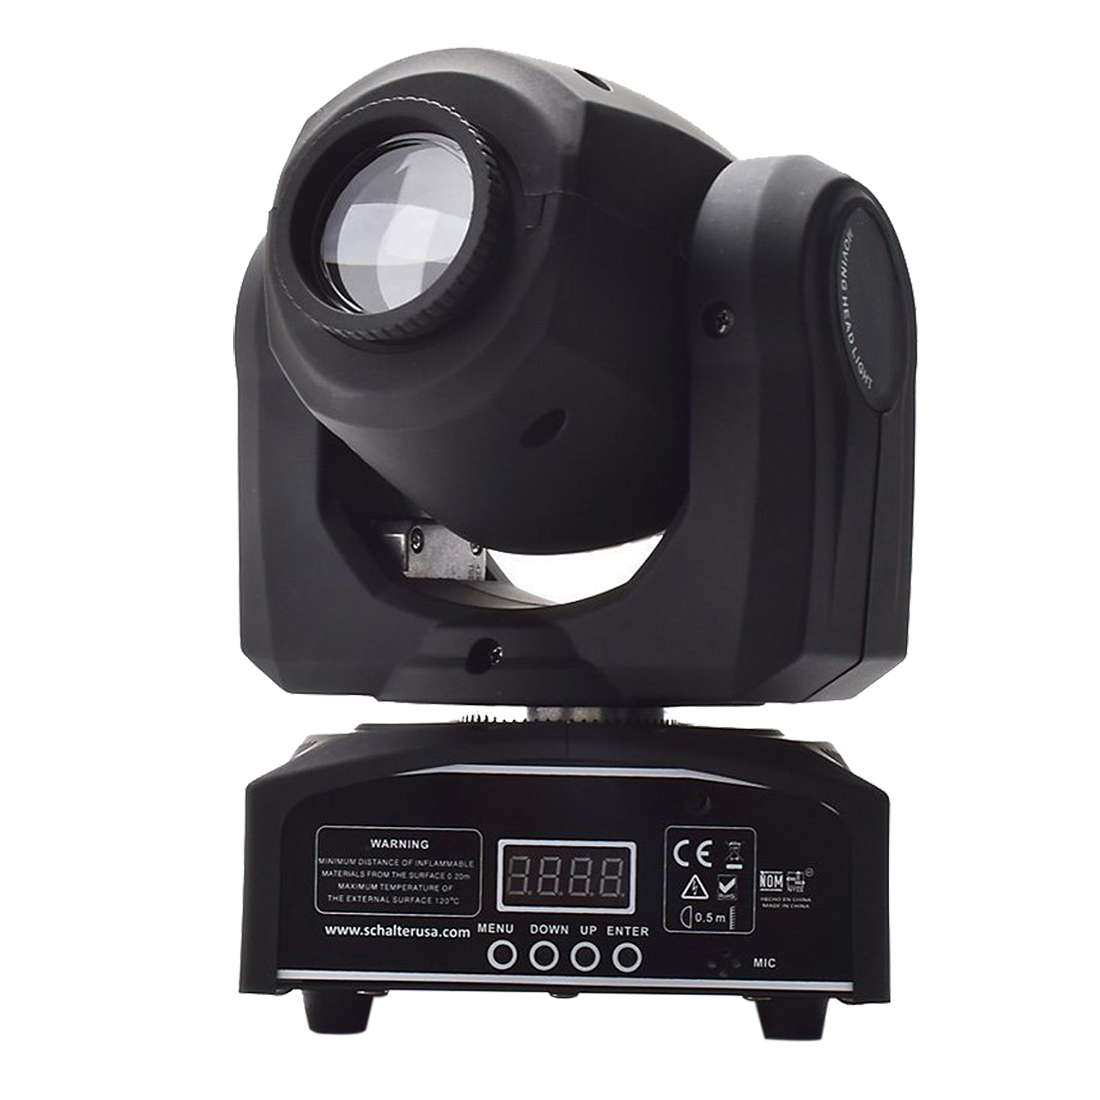 2 X 10W LED Patterns DJ Stage Moving Head Light DMX512 Auto Stop For Club Party Show Lighting2 X 10W LED Patterns DJ Stage Moving Head Light DMX512 Auto Stop For Club Party Show Lighting